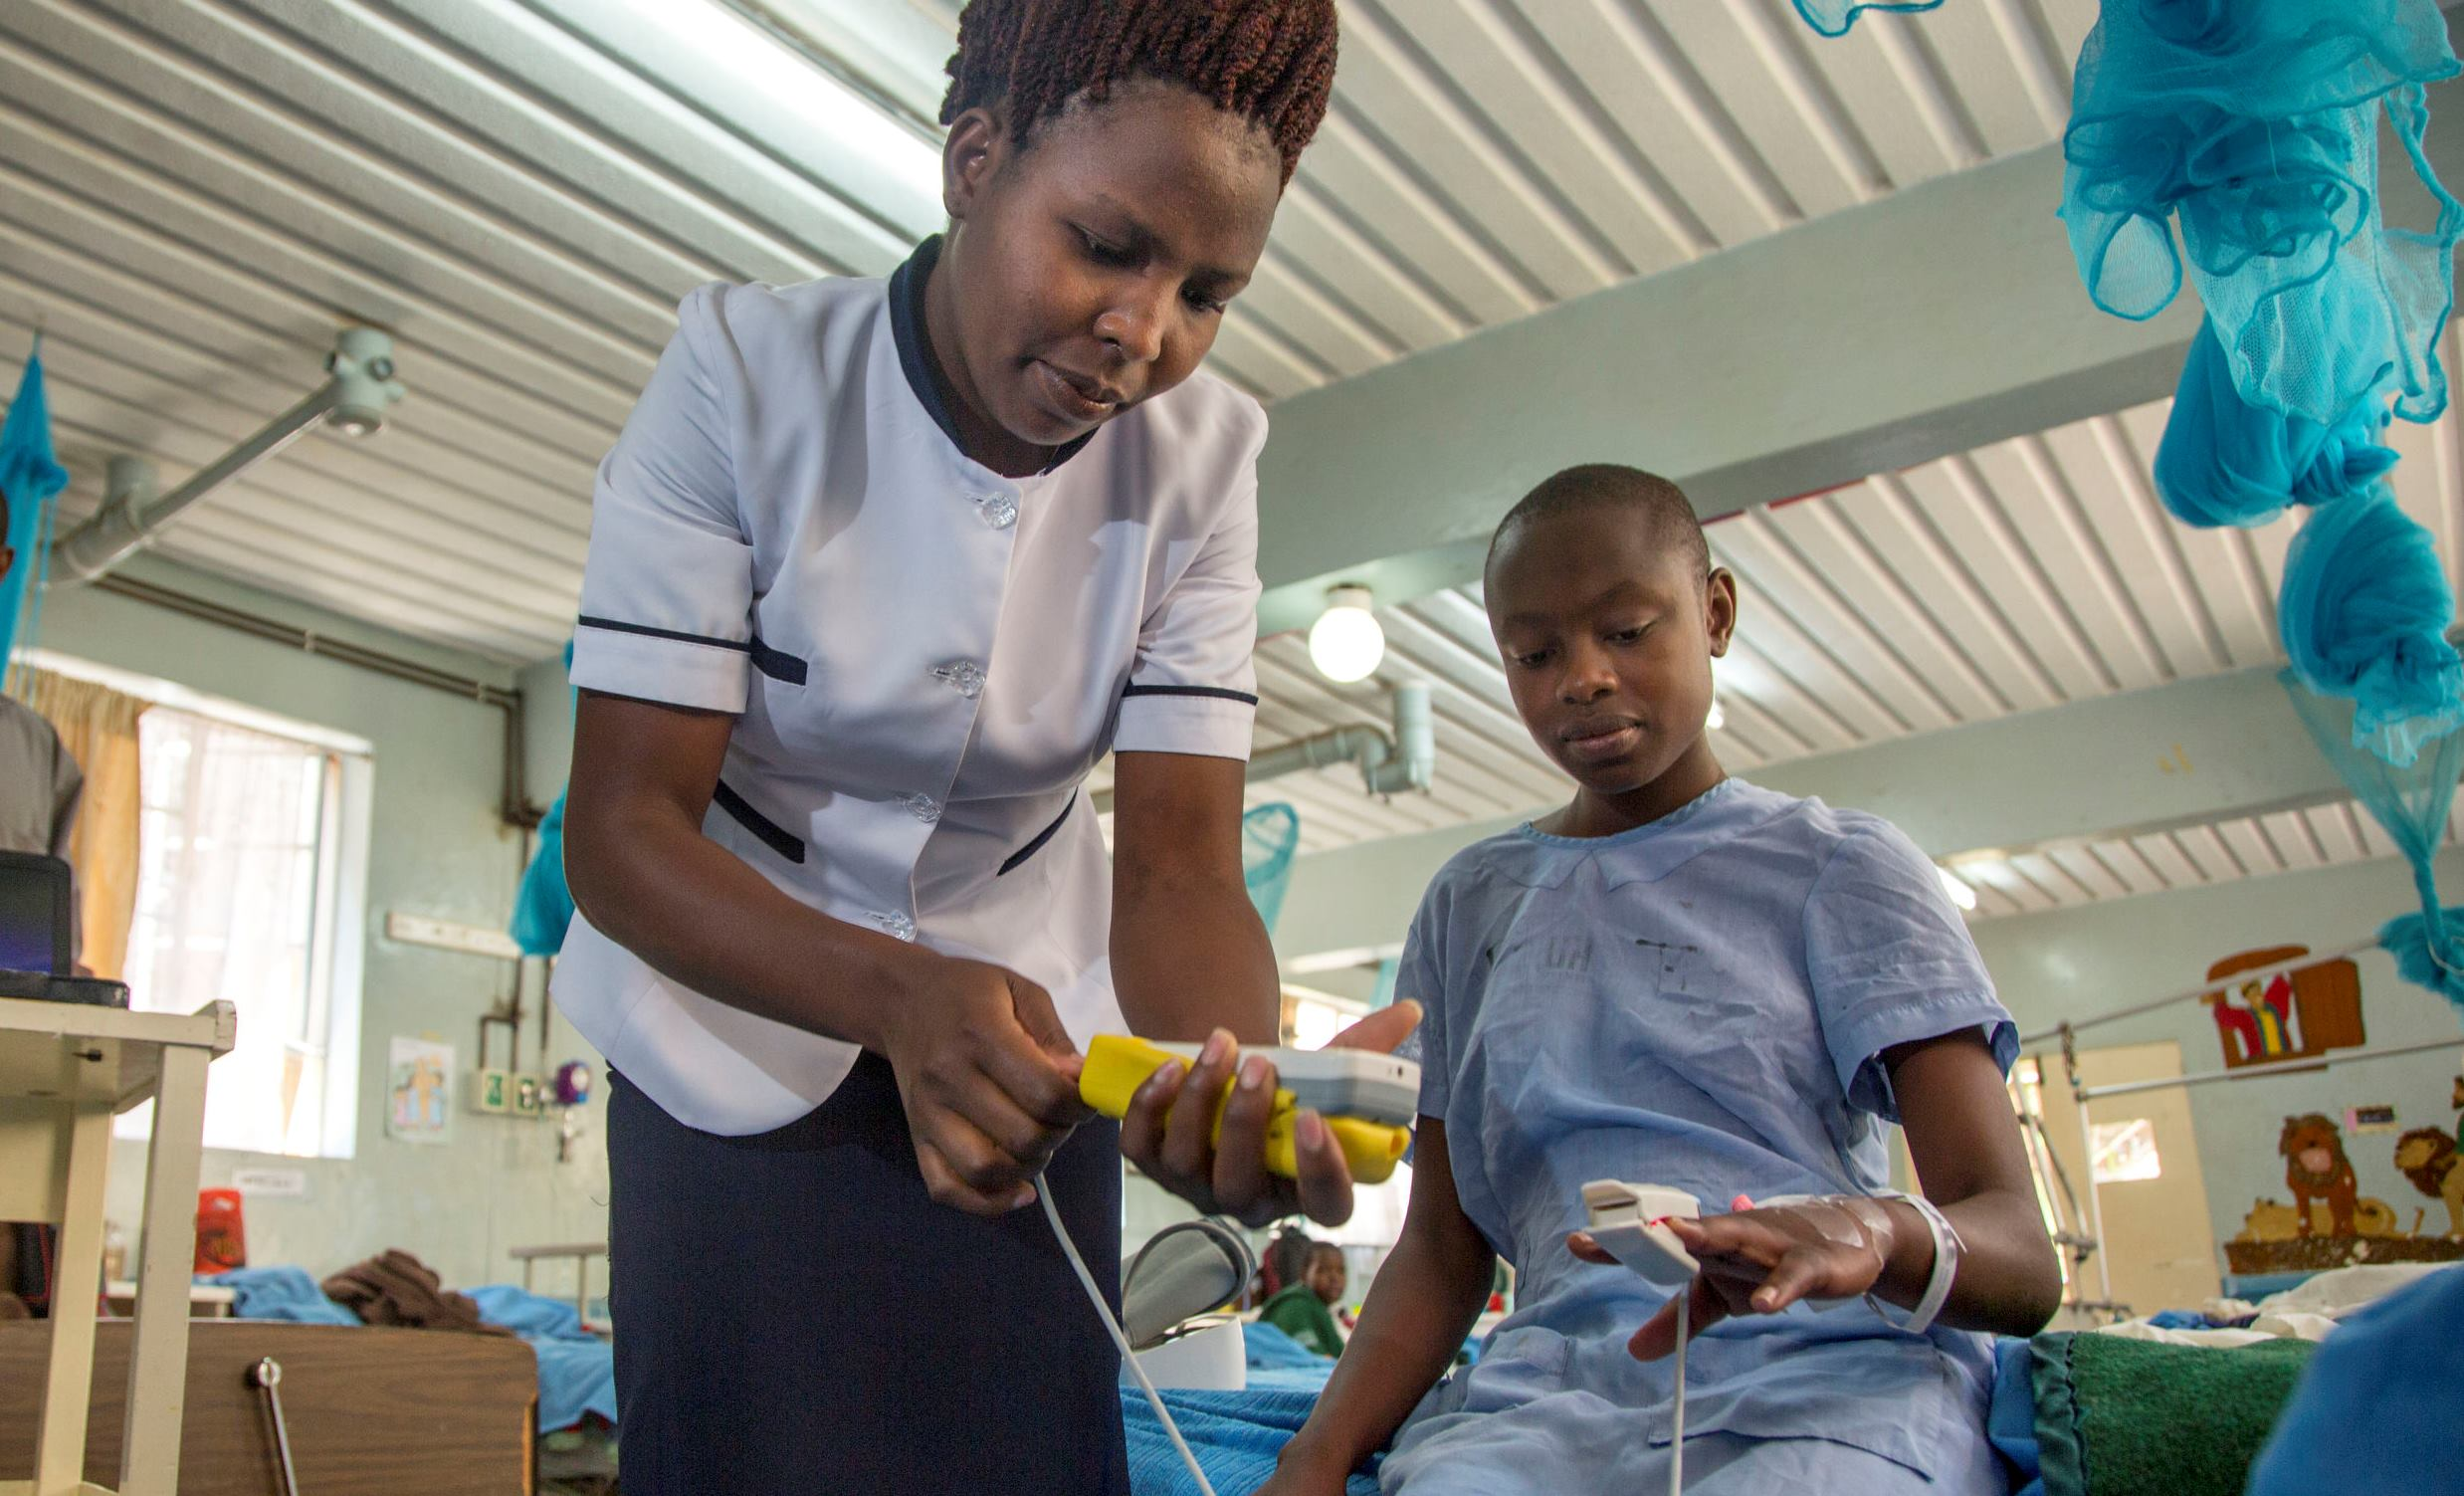 Nurse and patient in Kenya